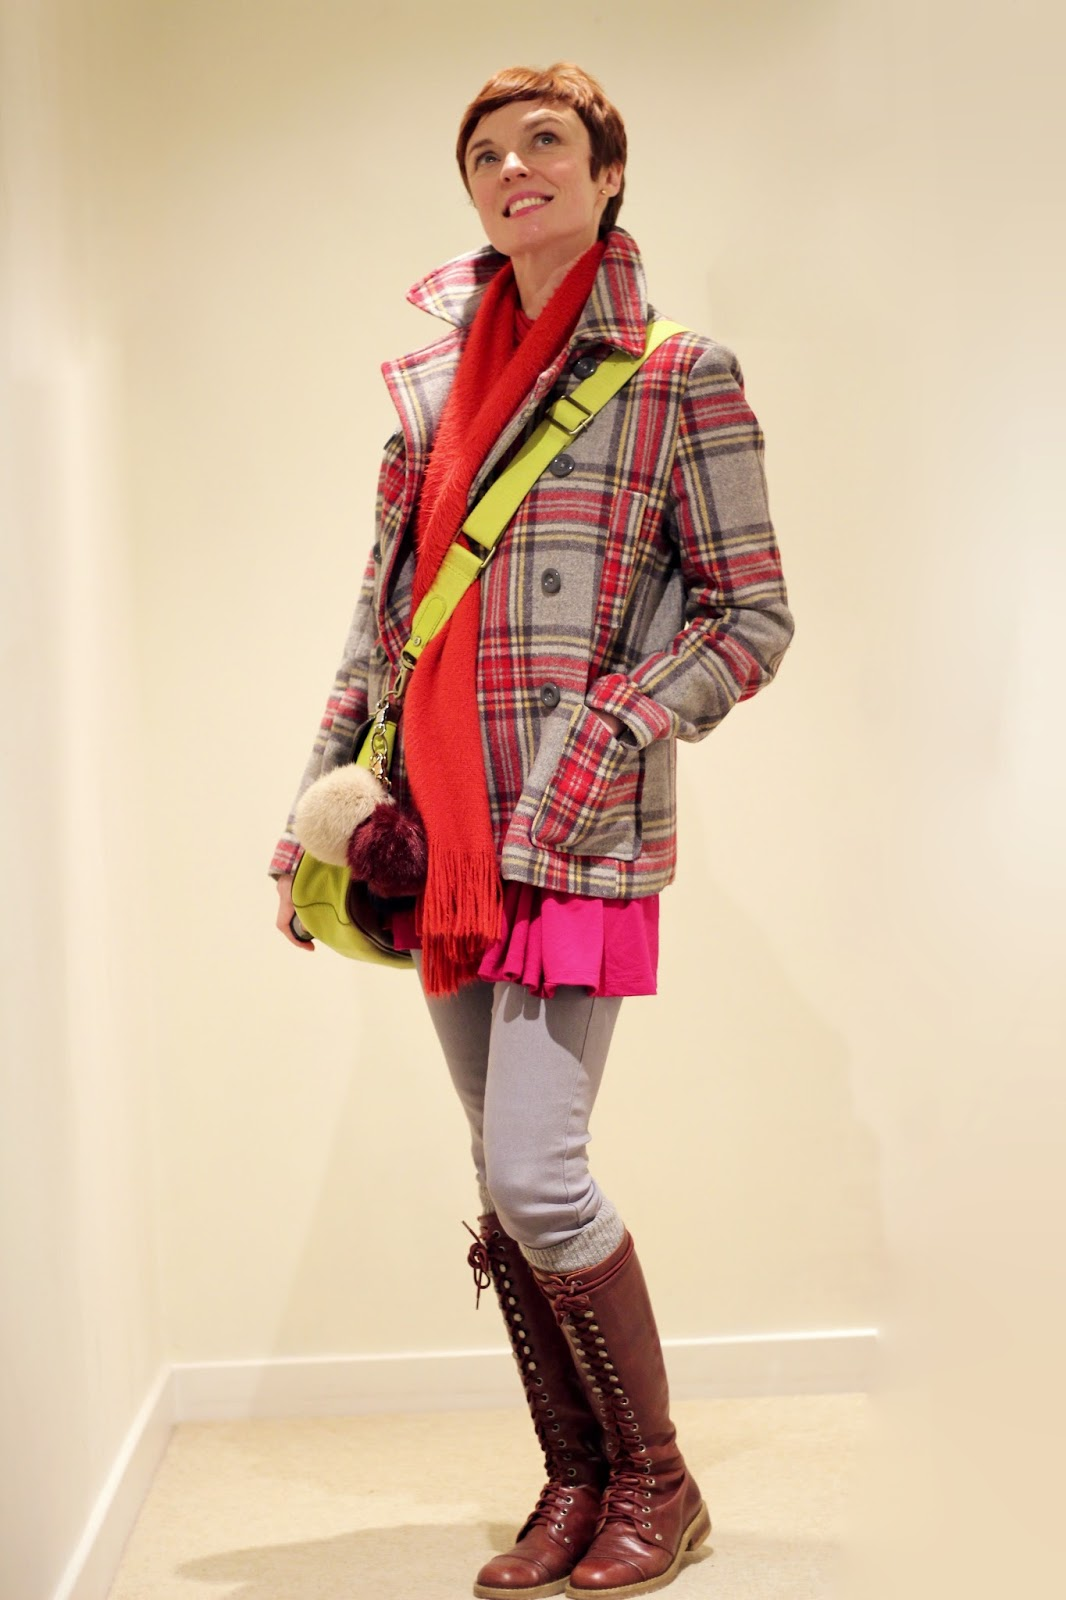 Hot pink, neon yellow, tartan & grey | Fake Fabulous